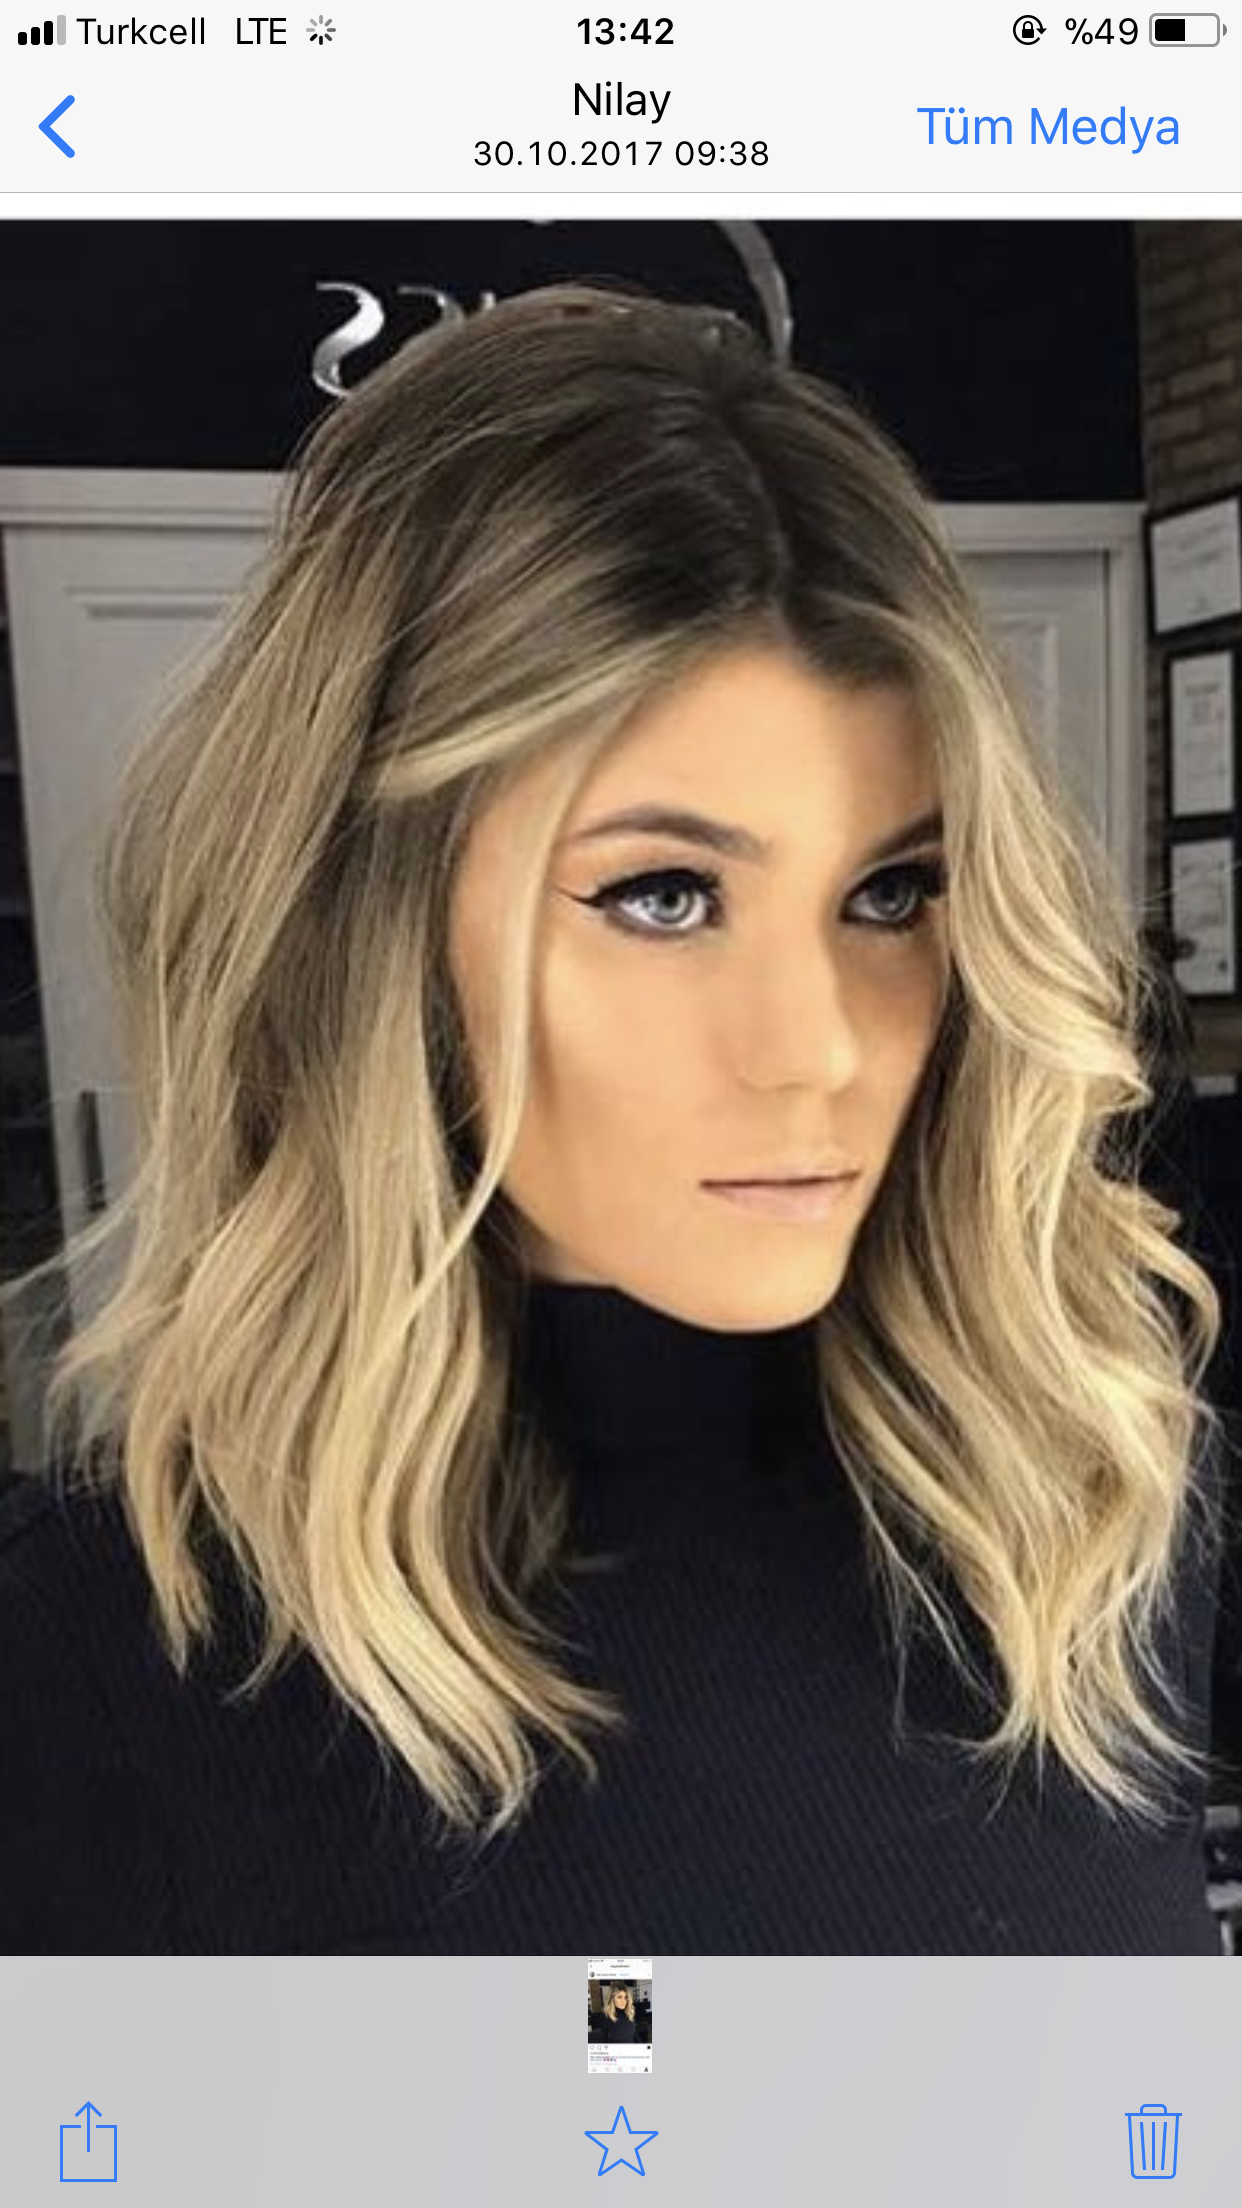 Pin by Rachel Taylor on Cute Hair in 2019 | Textured haircut, Lob hairstyle, Hair lengths